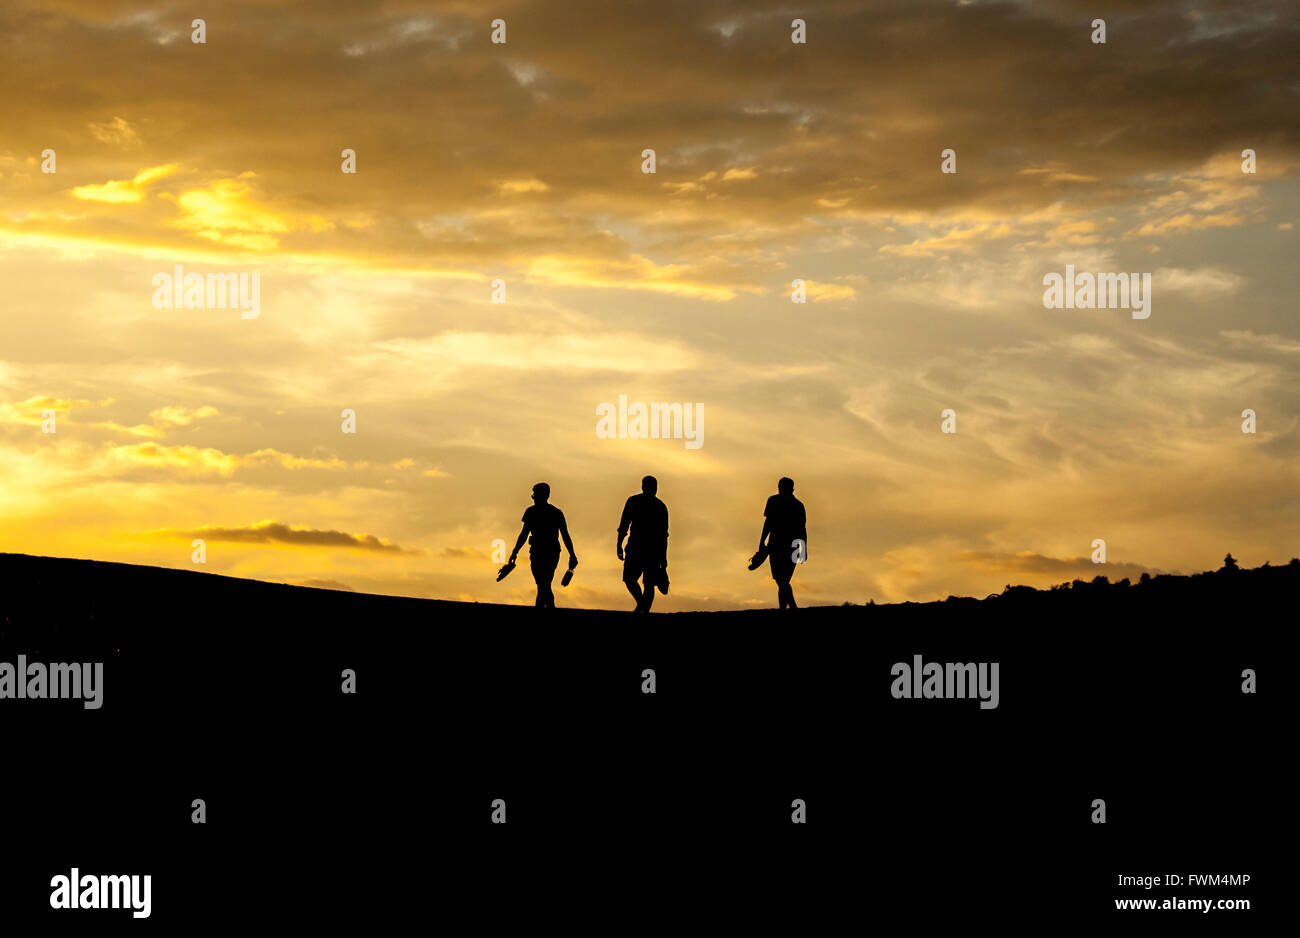 Silhouette Men Walking On Hill Against Sky During Sunset - Stock Image